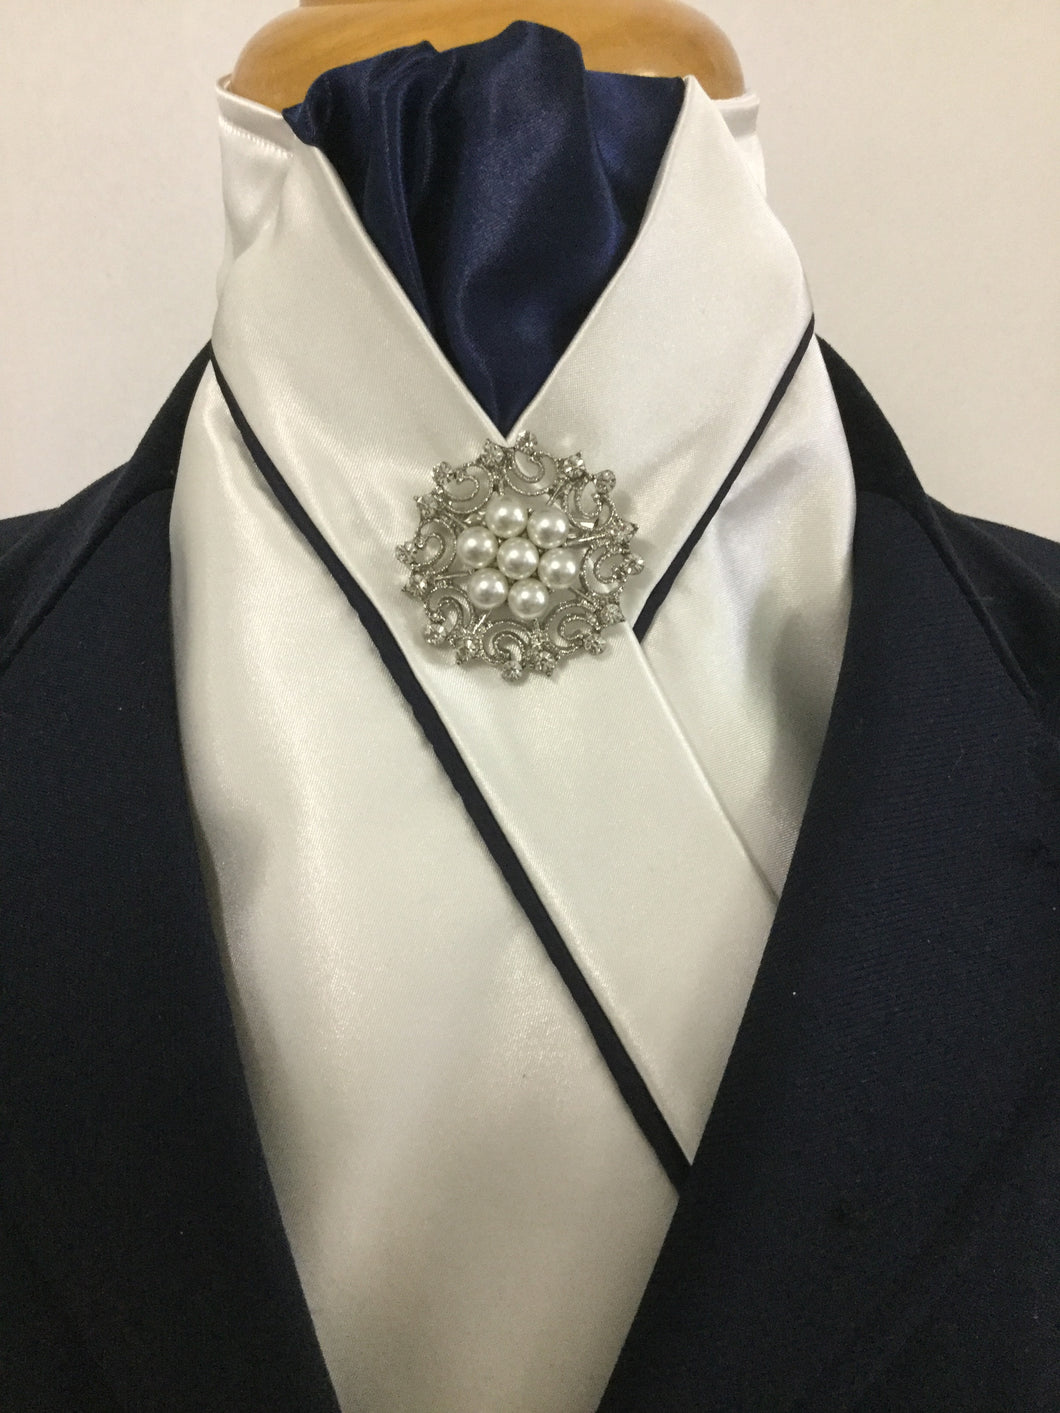 HHD Cream Satin Custom Pretied Stock Tie Navy Blue with Piping